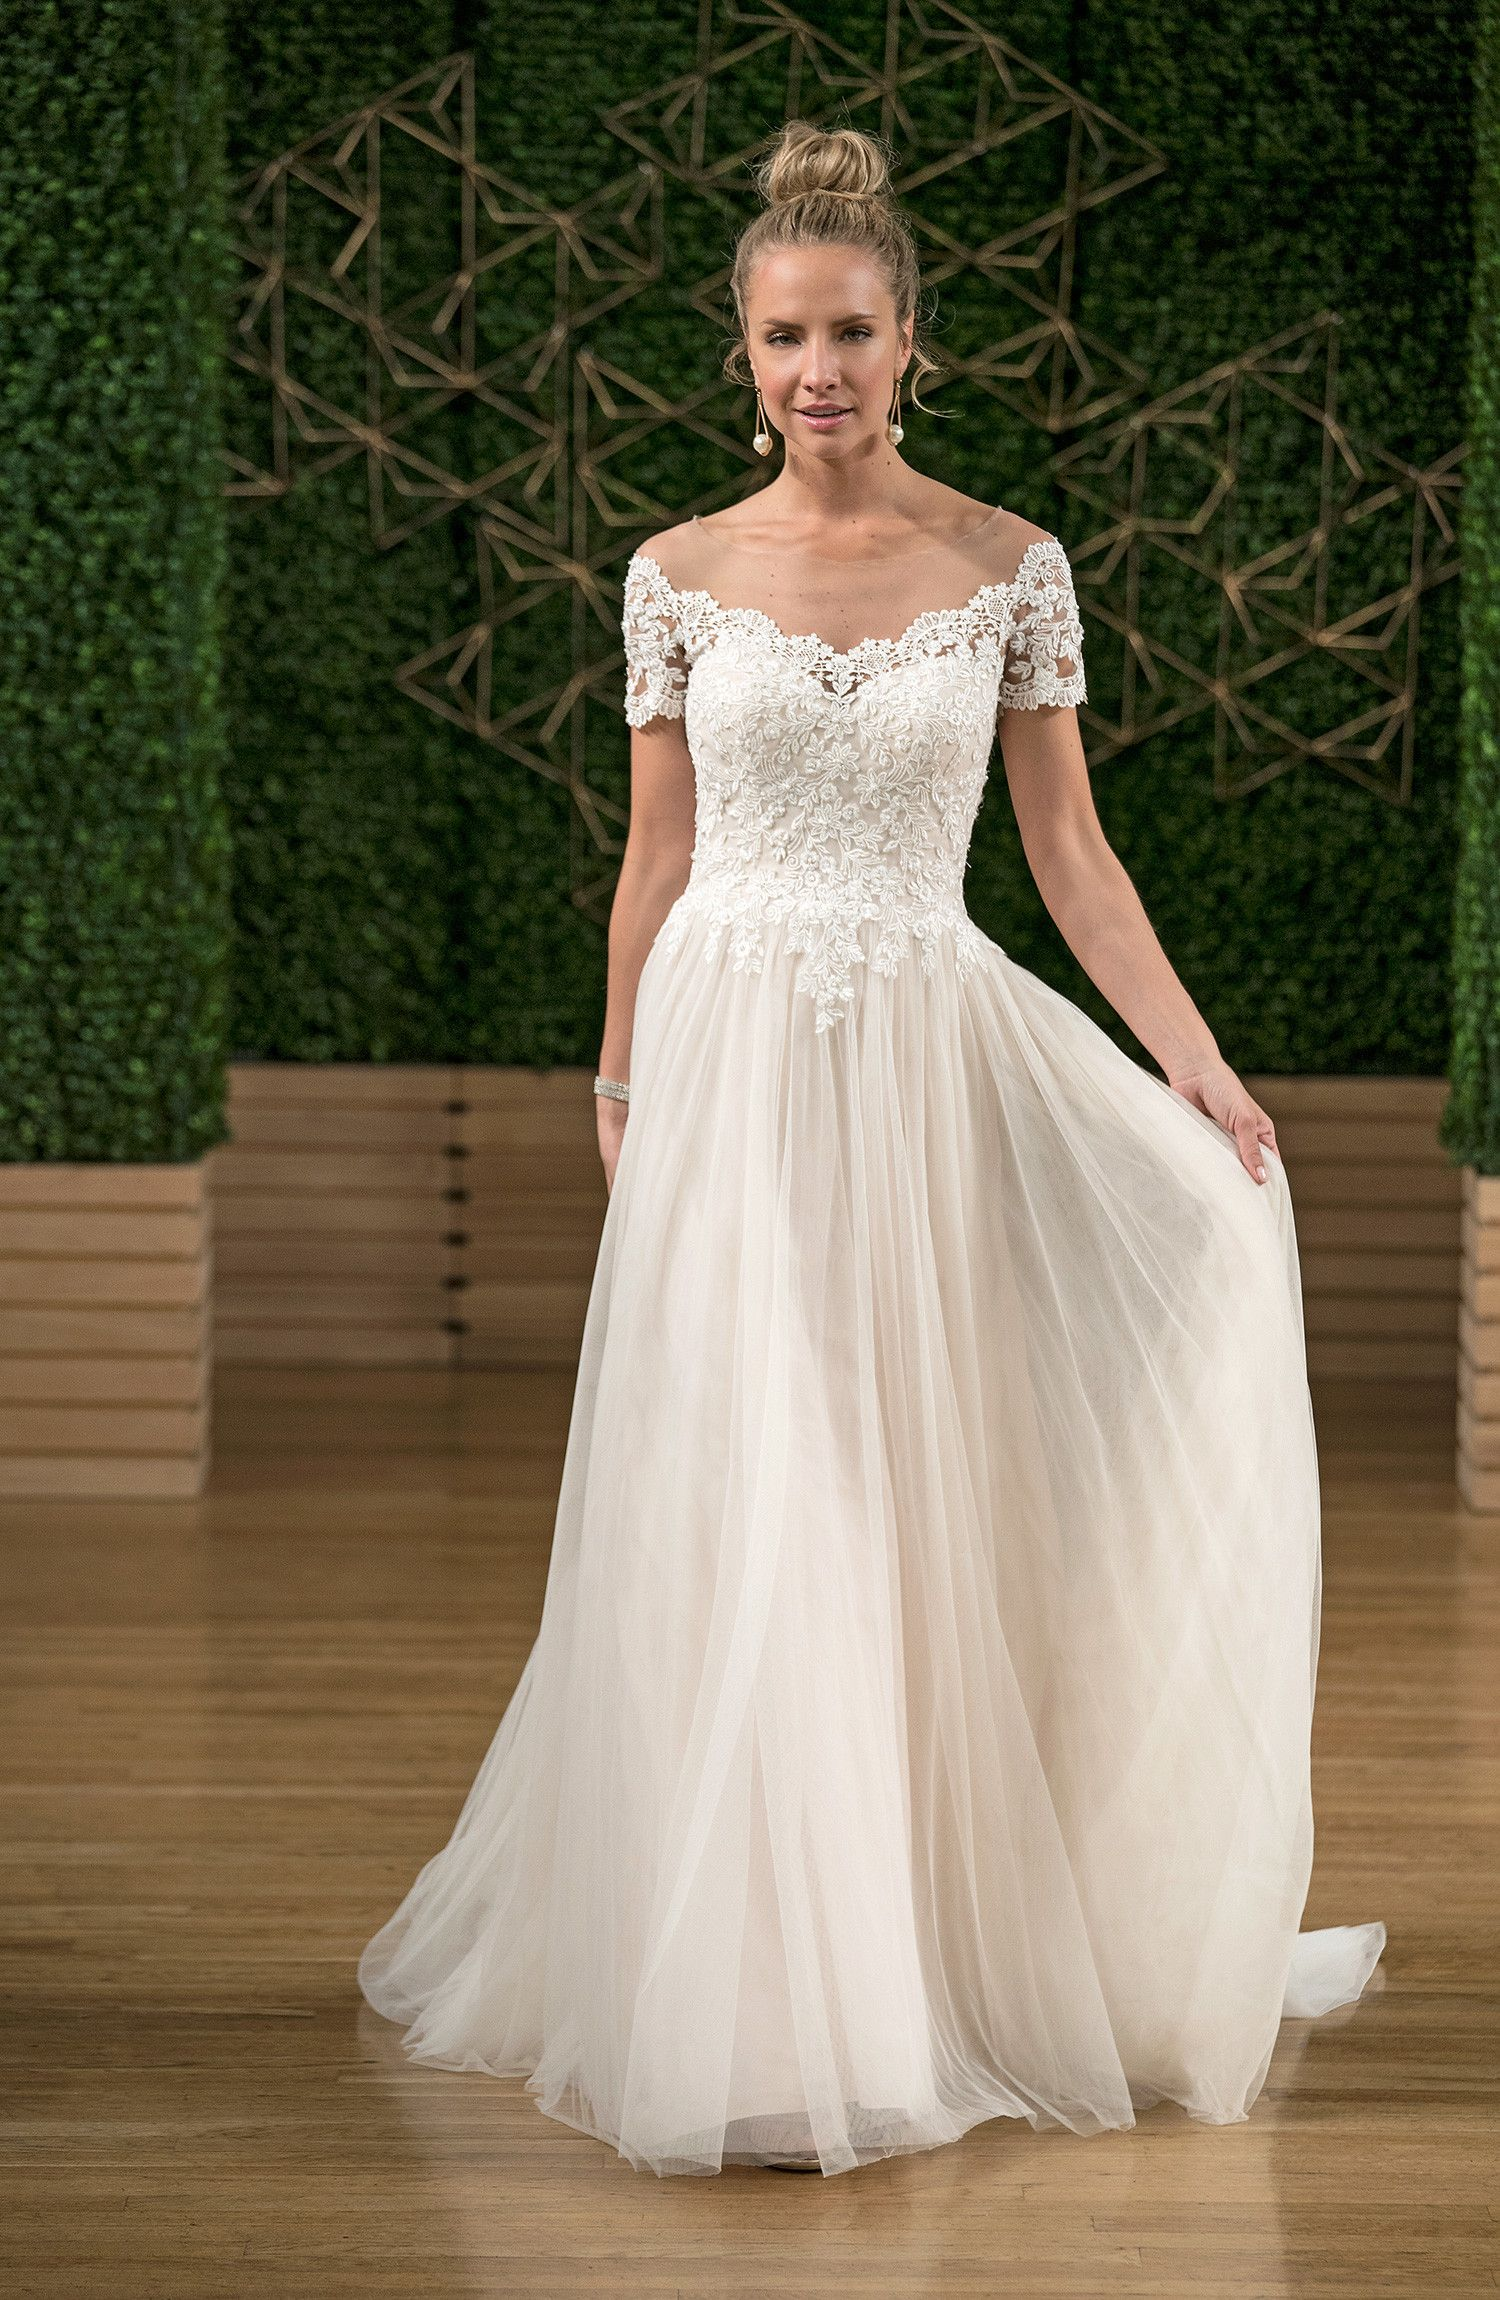 Offtheshoulder aline wedding dress with lace bodice and tulle